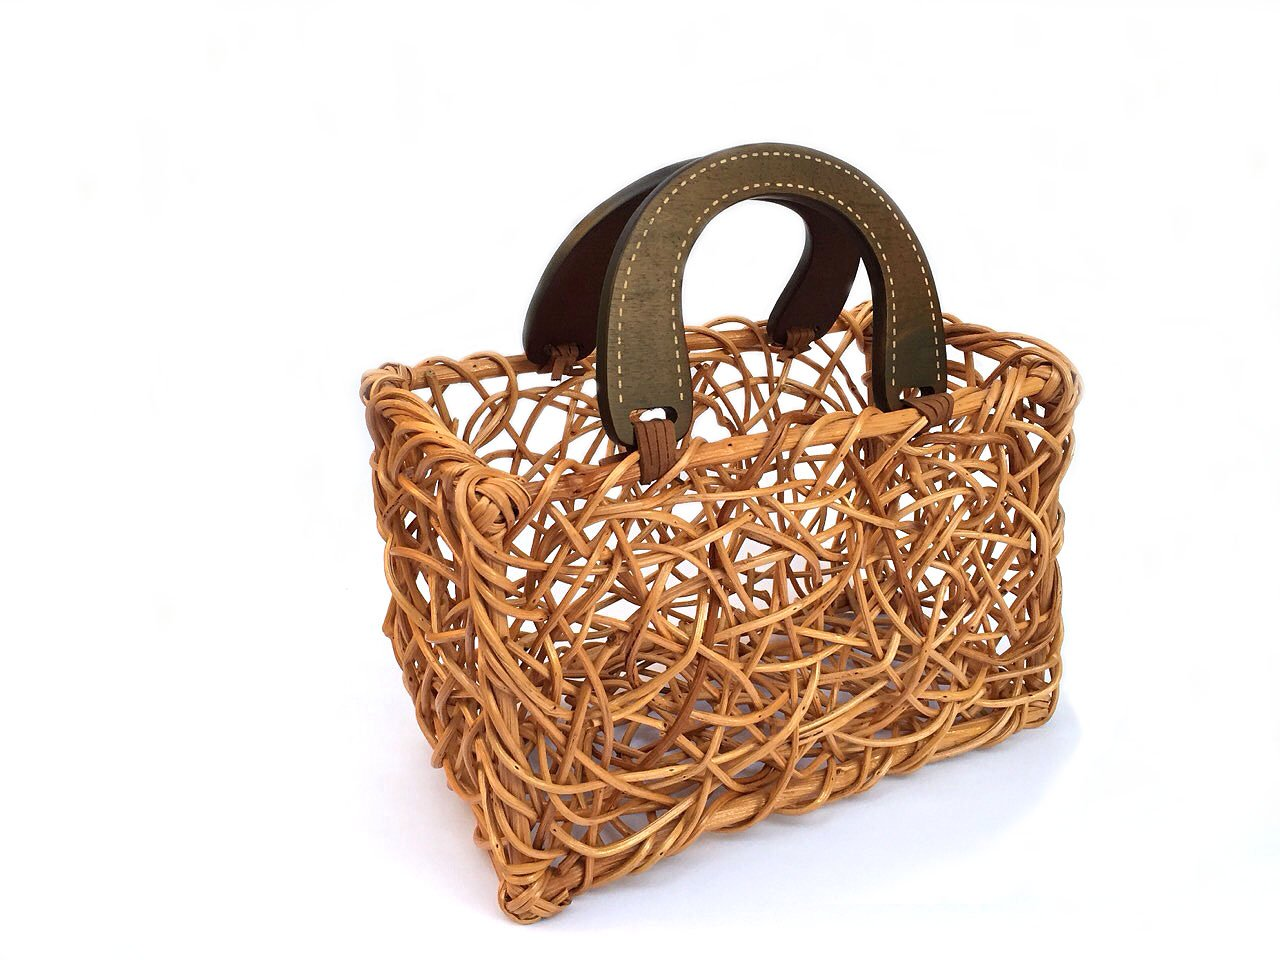 Picnic Basket Flower Girl Basket Beach Picnic Basket Willow Basket Wicker Basket Storage Basket